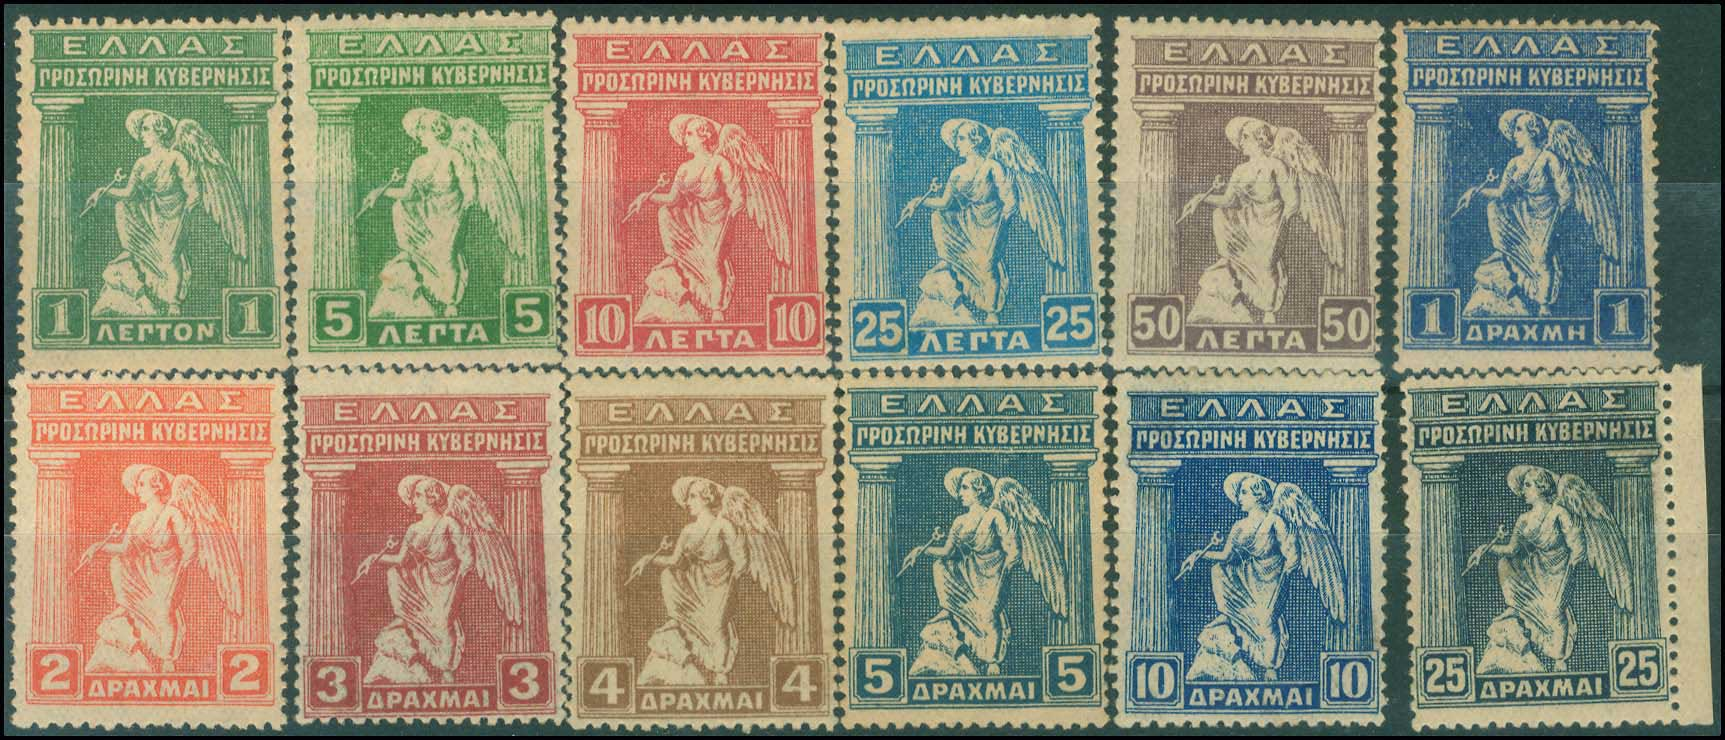 Lot 413 - -  1911 - 1923 E.T. OVPT. & PROVISIONAL GOVERNMENT -  A. Karamitsos Public Auction 645 General Stamp Sale